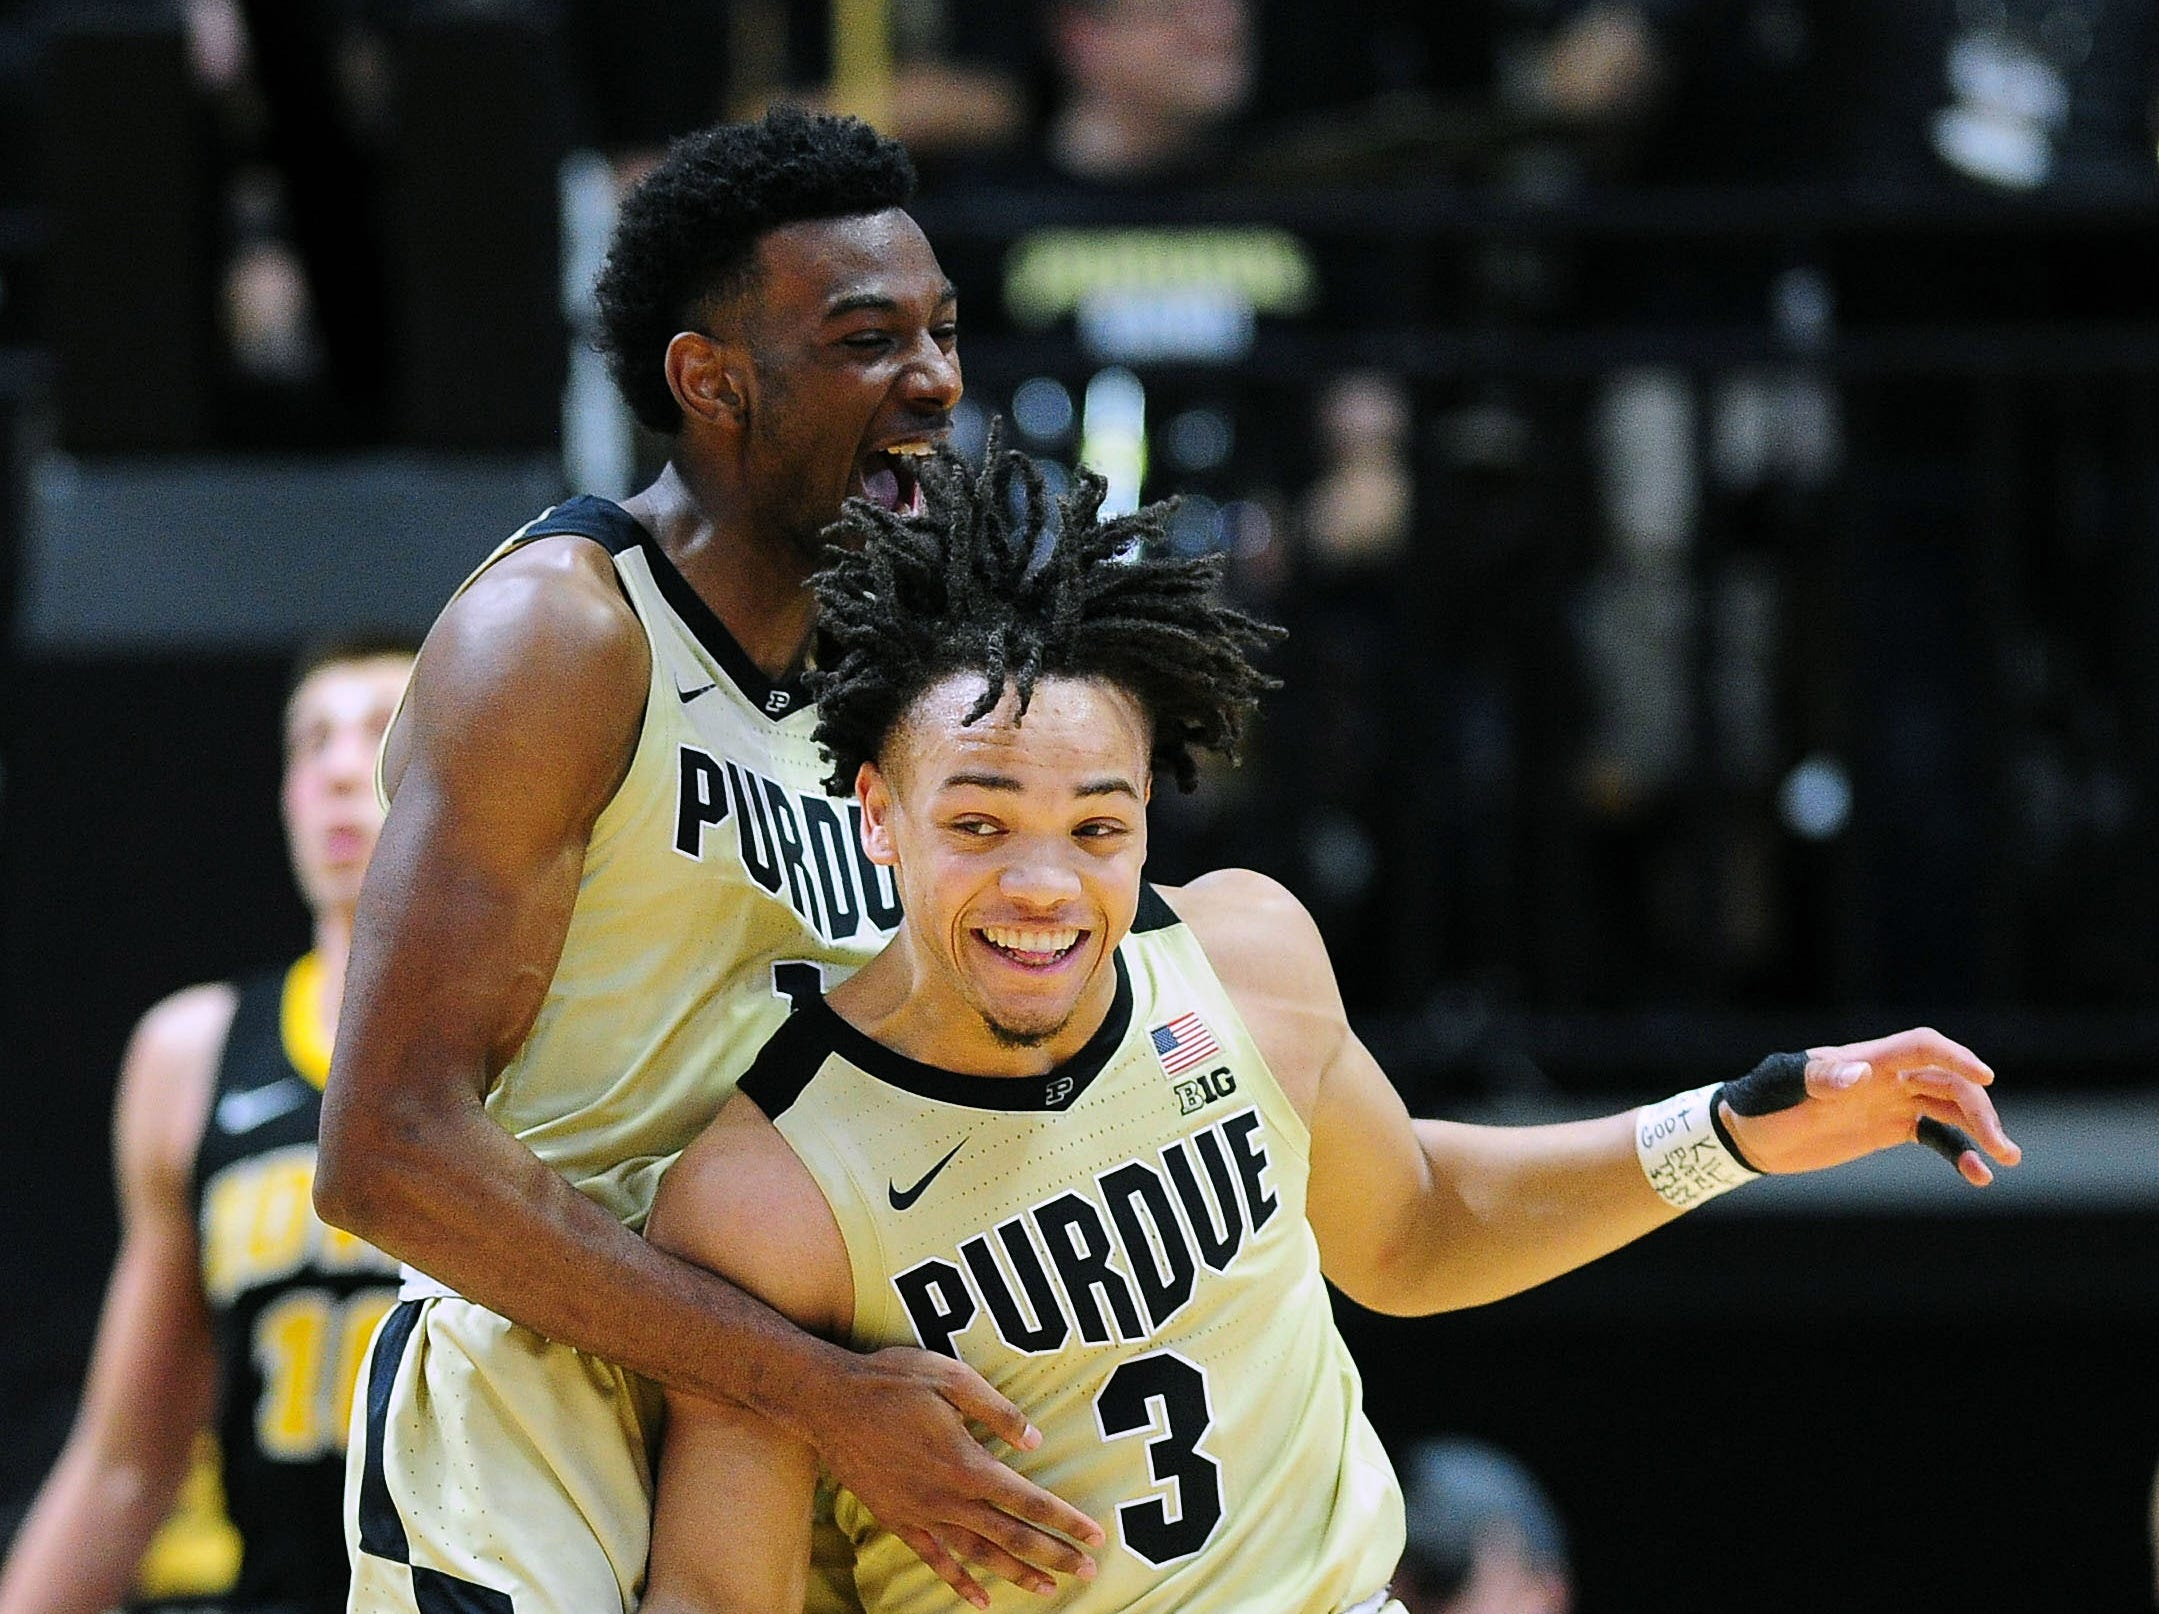 Jan 3, 2019; West Lafayette, IN, USA; Purdue Boilermakers guard Carsen Edwards (3) celebrates along with Purdue Boilermakers forward Aaron Wheeler (1) against the Iowa Hawkeyes in the second half at Mackey Arena. Mandatory Credit: Thomas J. Russo-USA TODAY Sports